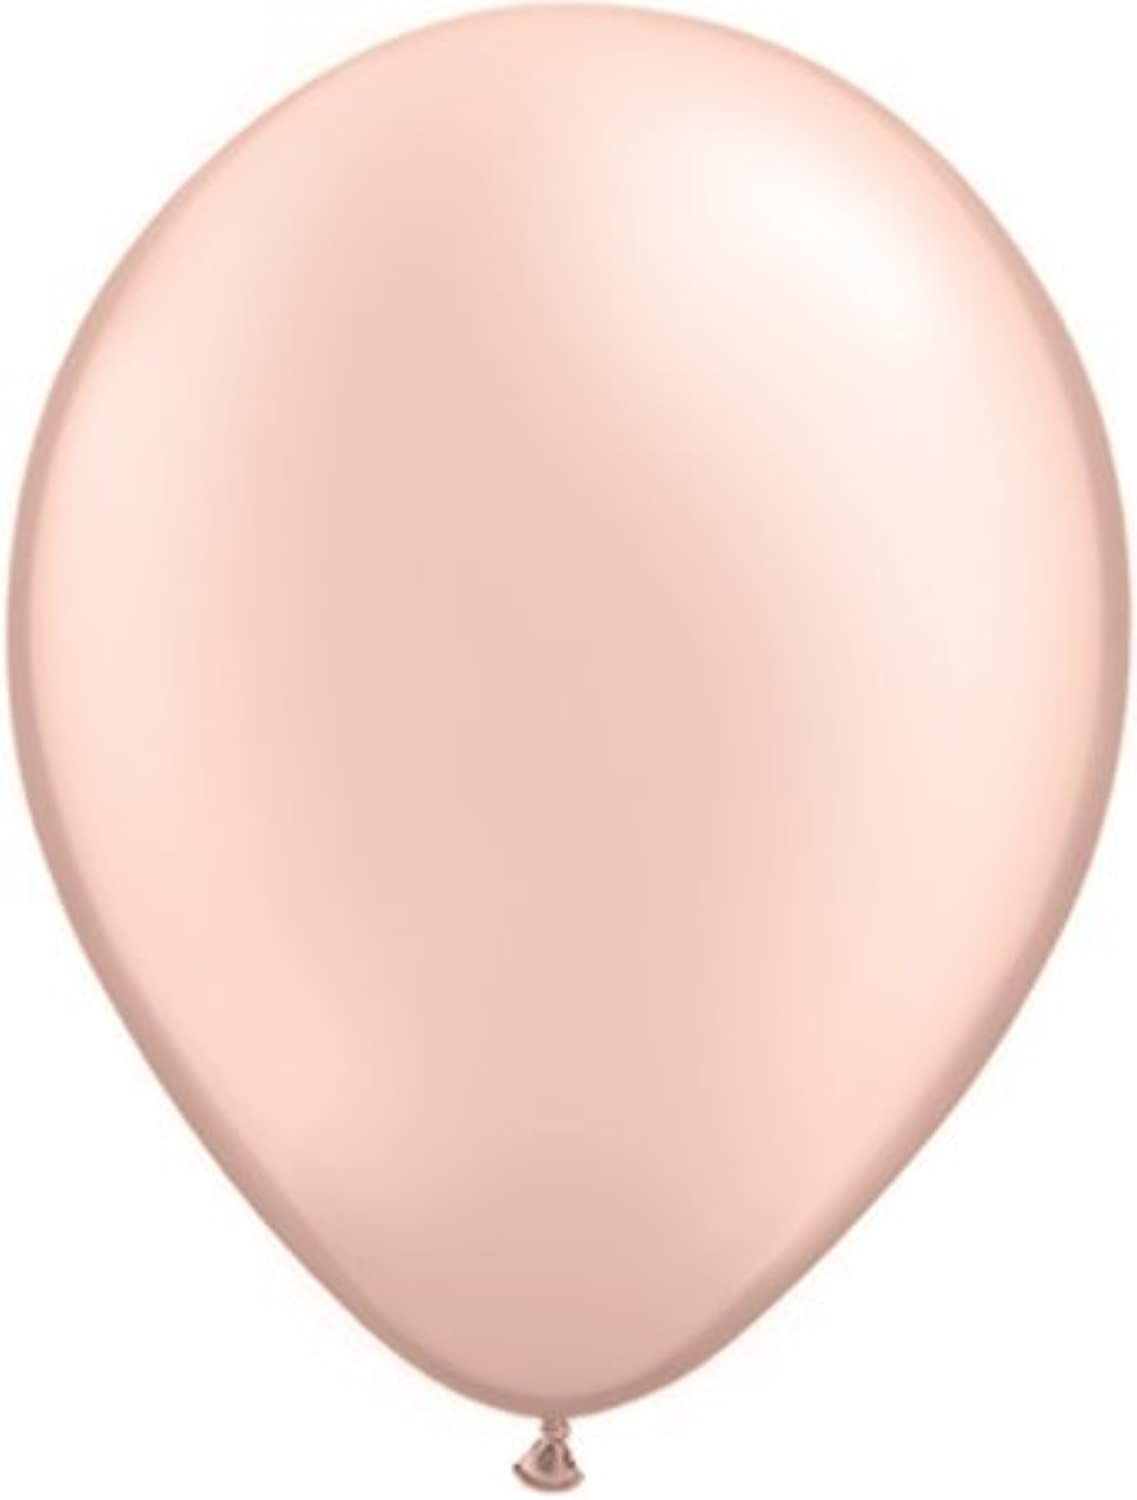 comprar mejor Pearl Pearl Pearl Peach 11 Qualatex Latex Balloons x 25 by Pearlised Solid Colour 30 Latex  comprar marca